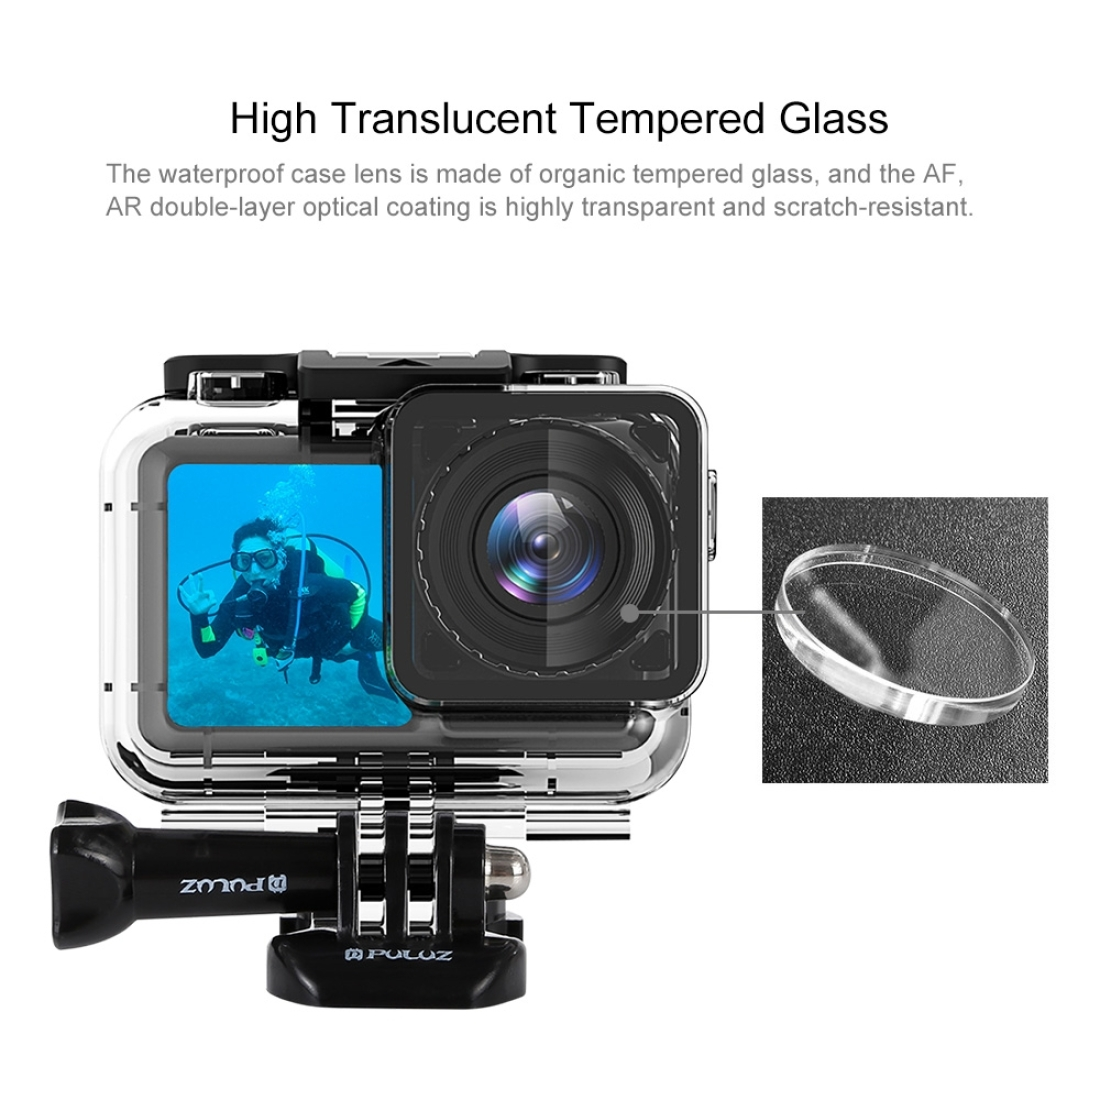 PULUZ 61m Underwater Waterproof Housing Diving Case for DJI Osmo Action, with Buckle Basic Mount & Screw